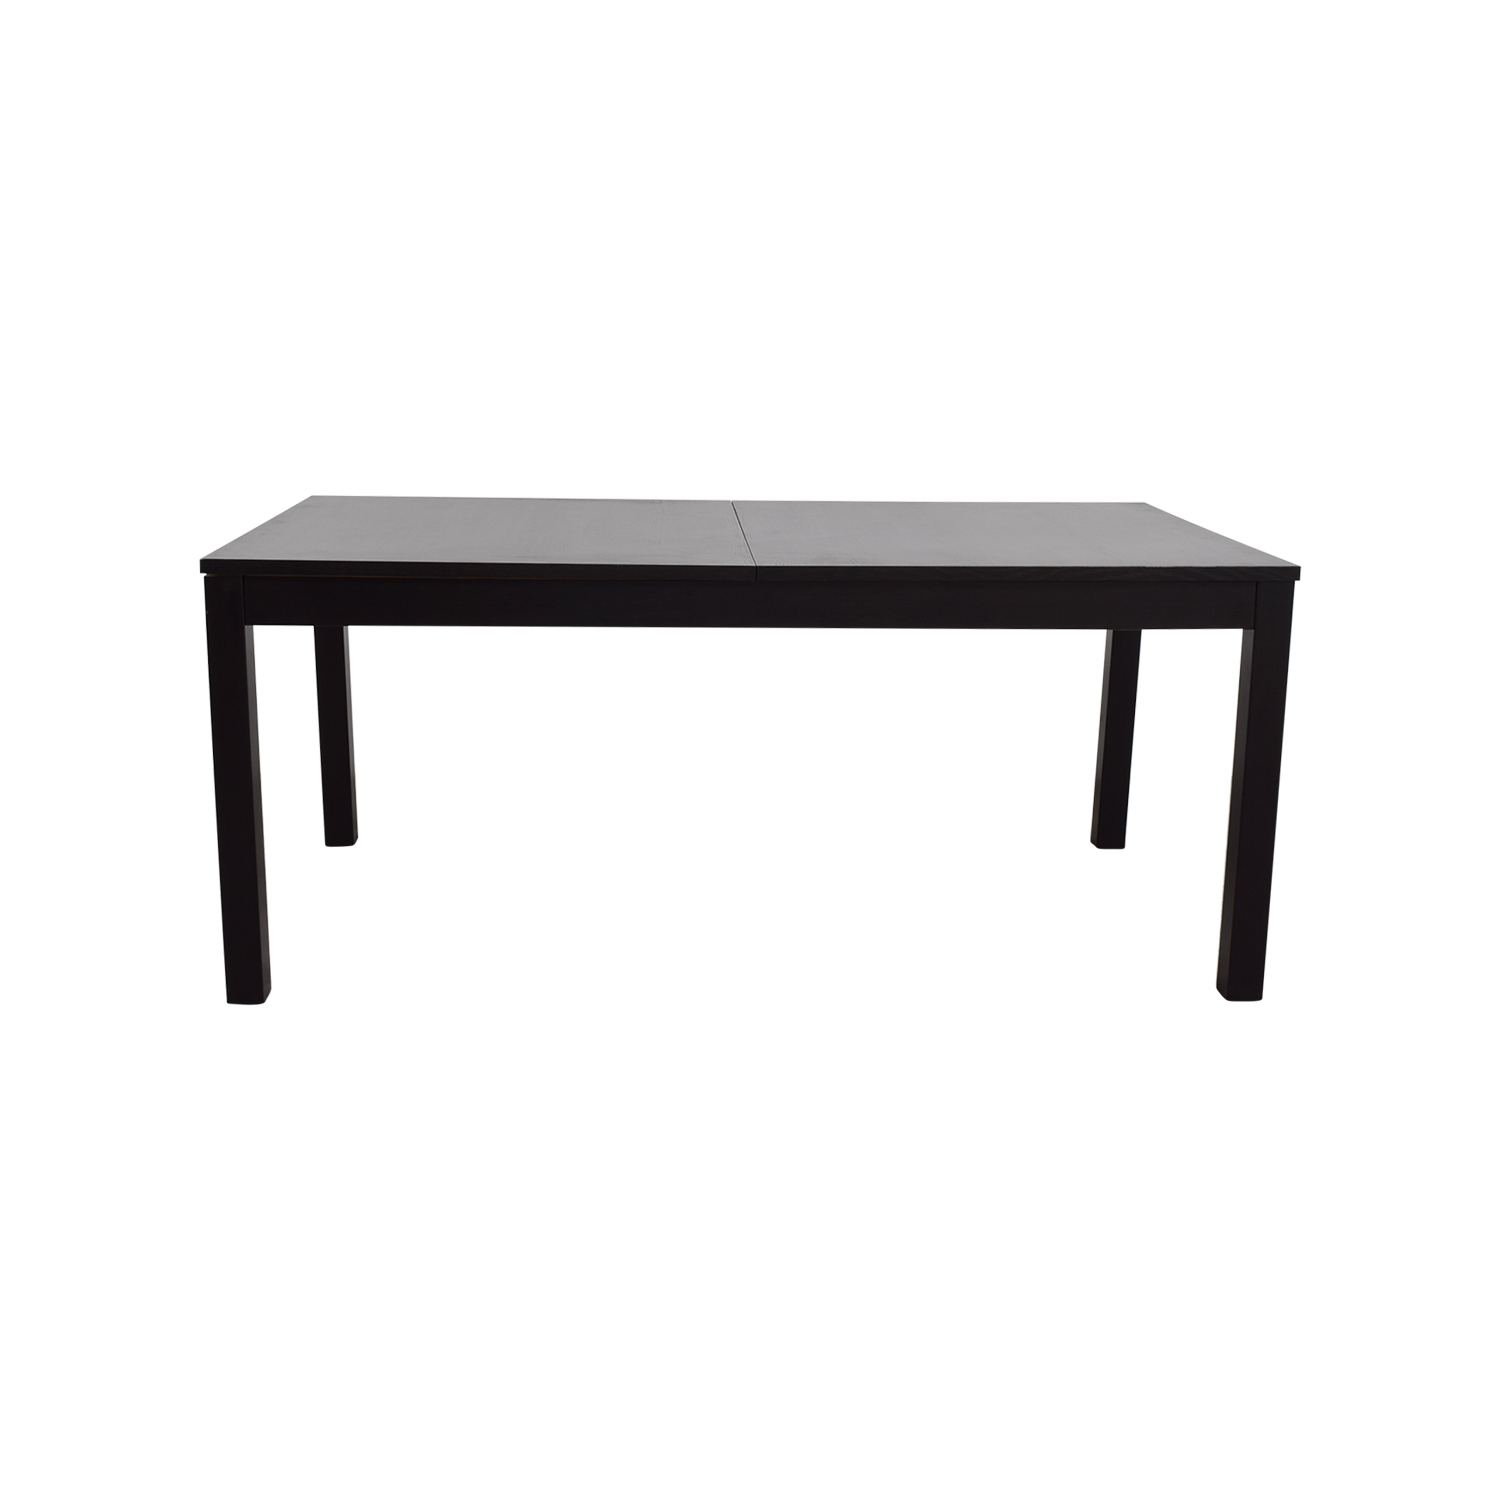 45% OFF ABC Carpet & Home ABC Carpet & Home Steel Dining Table